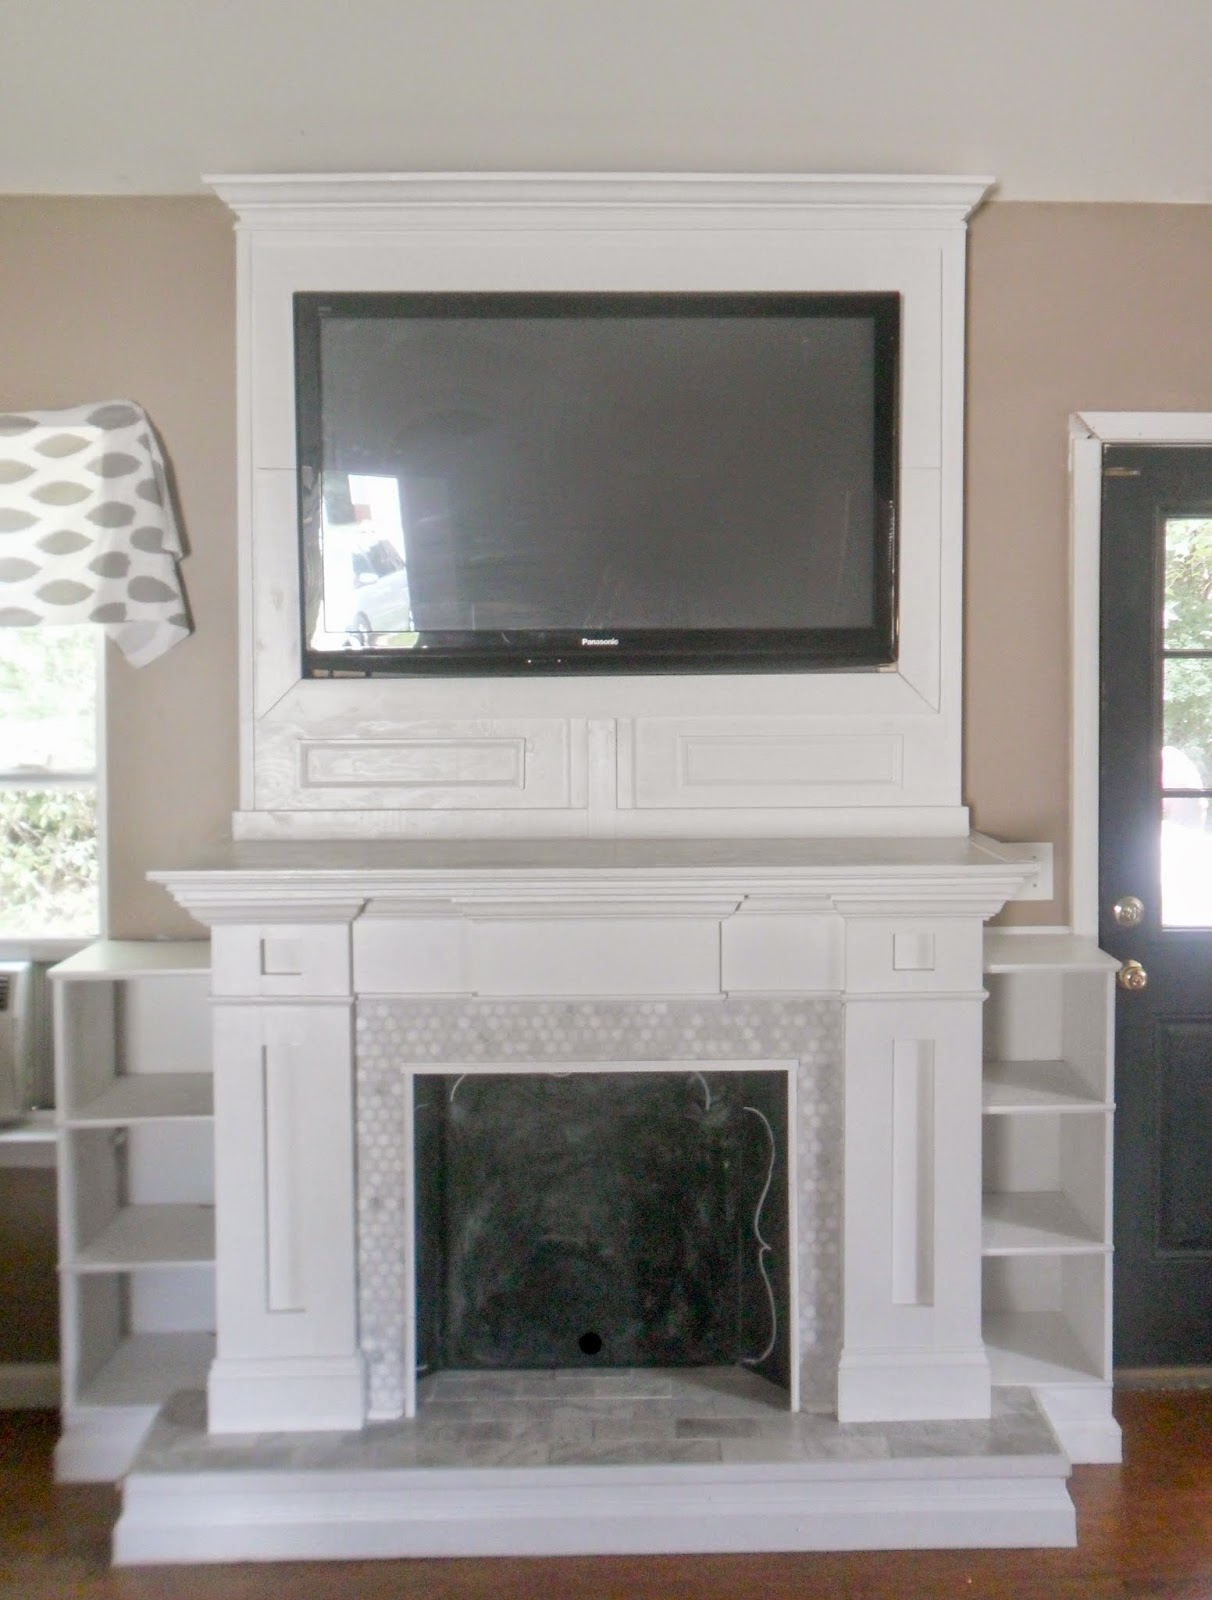 Home Heart and Hands Fireplace makeover featured at One More Time Events.com